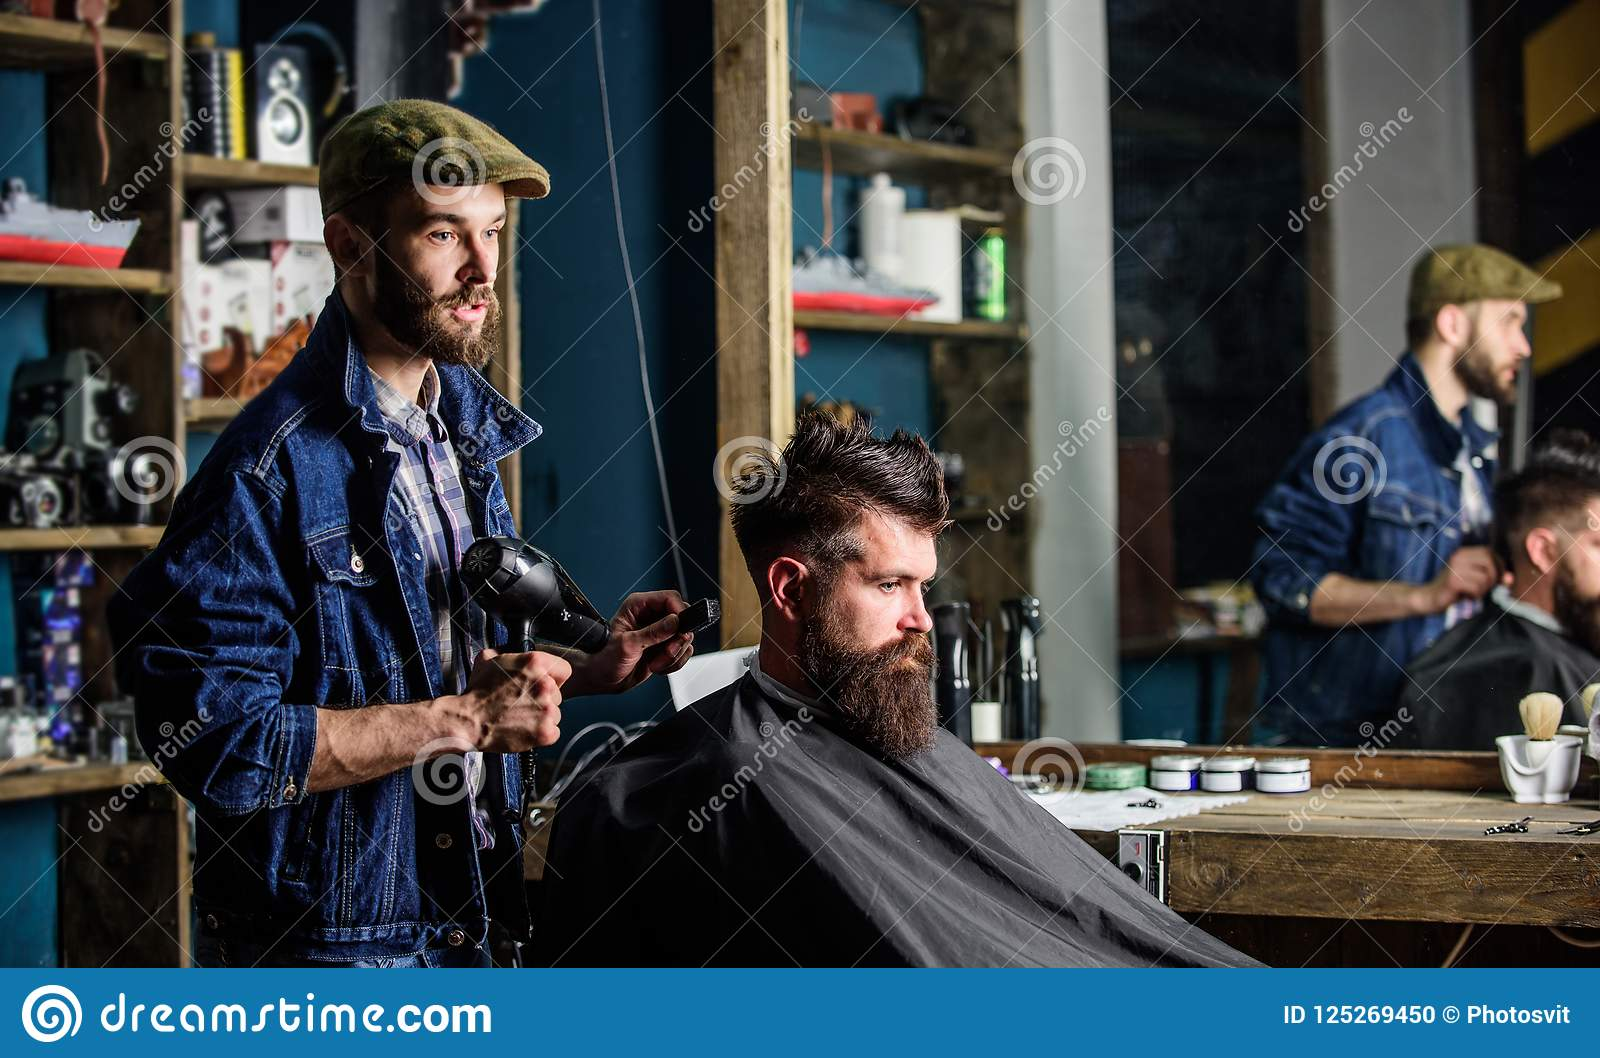 Bearded man getting groomed at hairdresser with hair dryer while sitting in chair at barbershop. Hipster concept